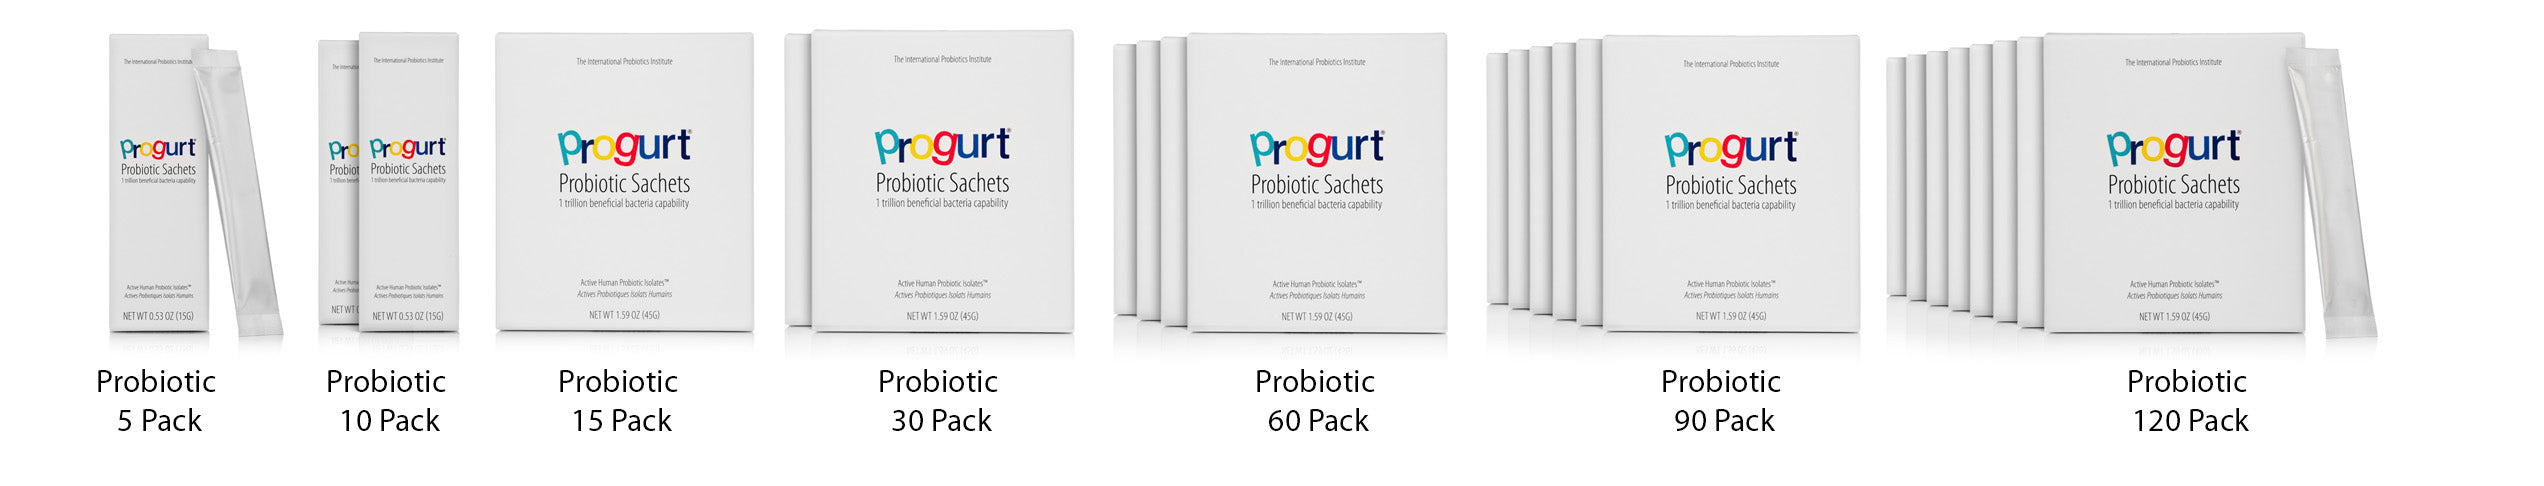 Ingredients per Probiotic Sachet